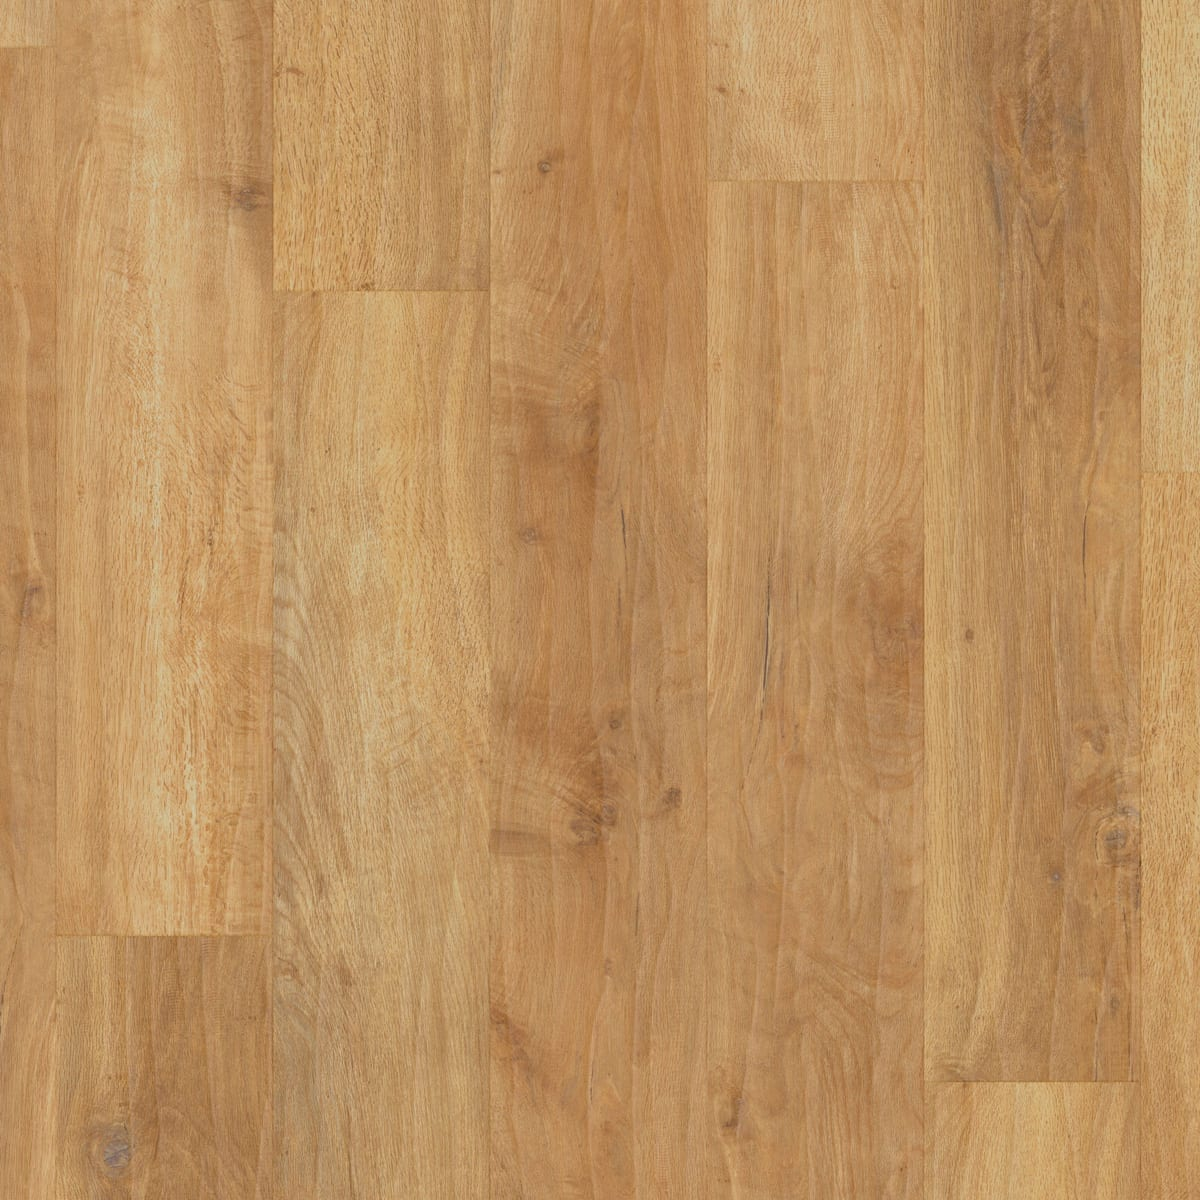 Karndean Art Select Oak Royale Vinyl Plank Flooring